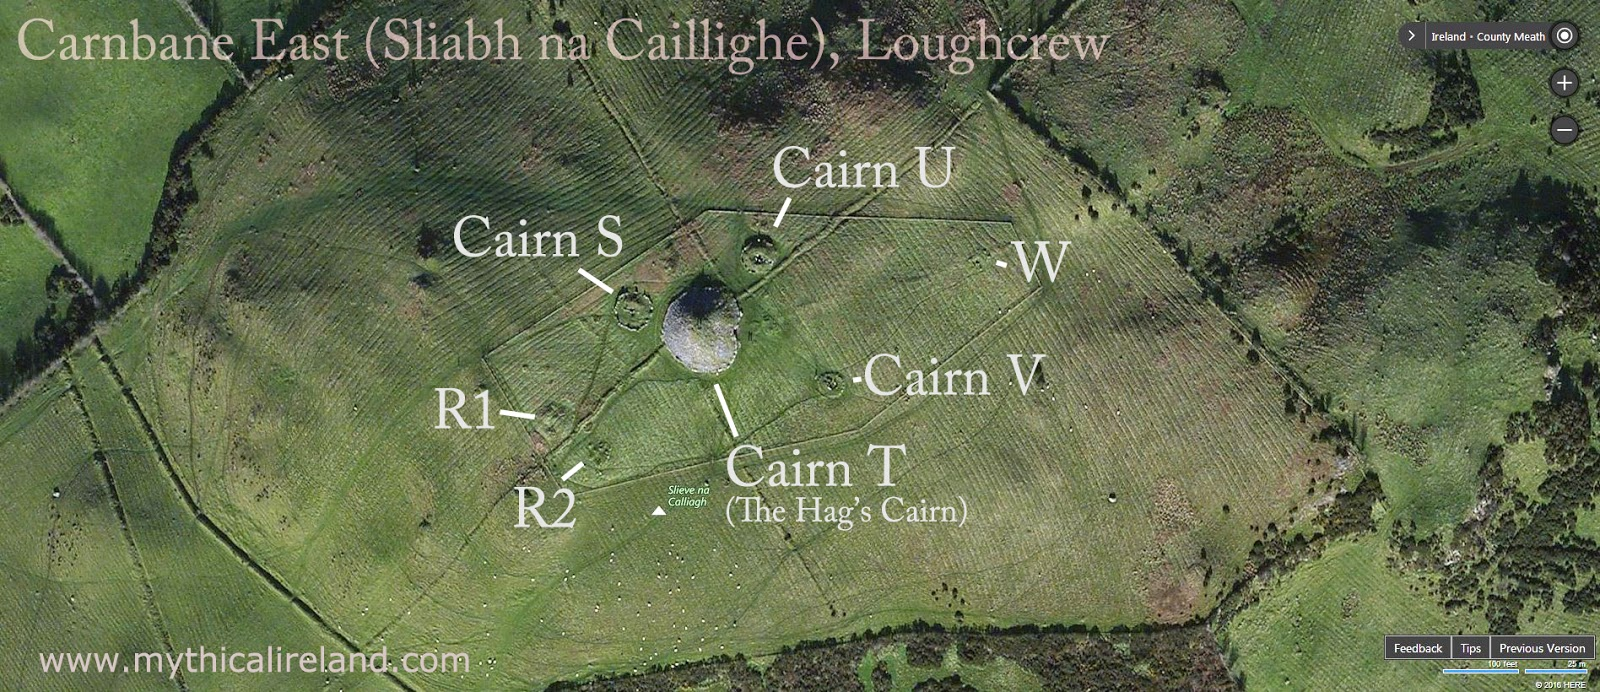 Mythical Ireland Blog Maps Of The Cairns At Sliabh Na Caillighe